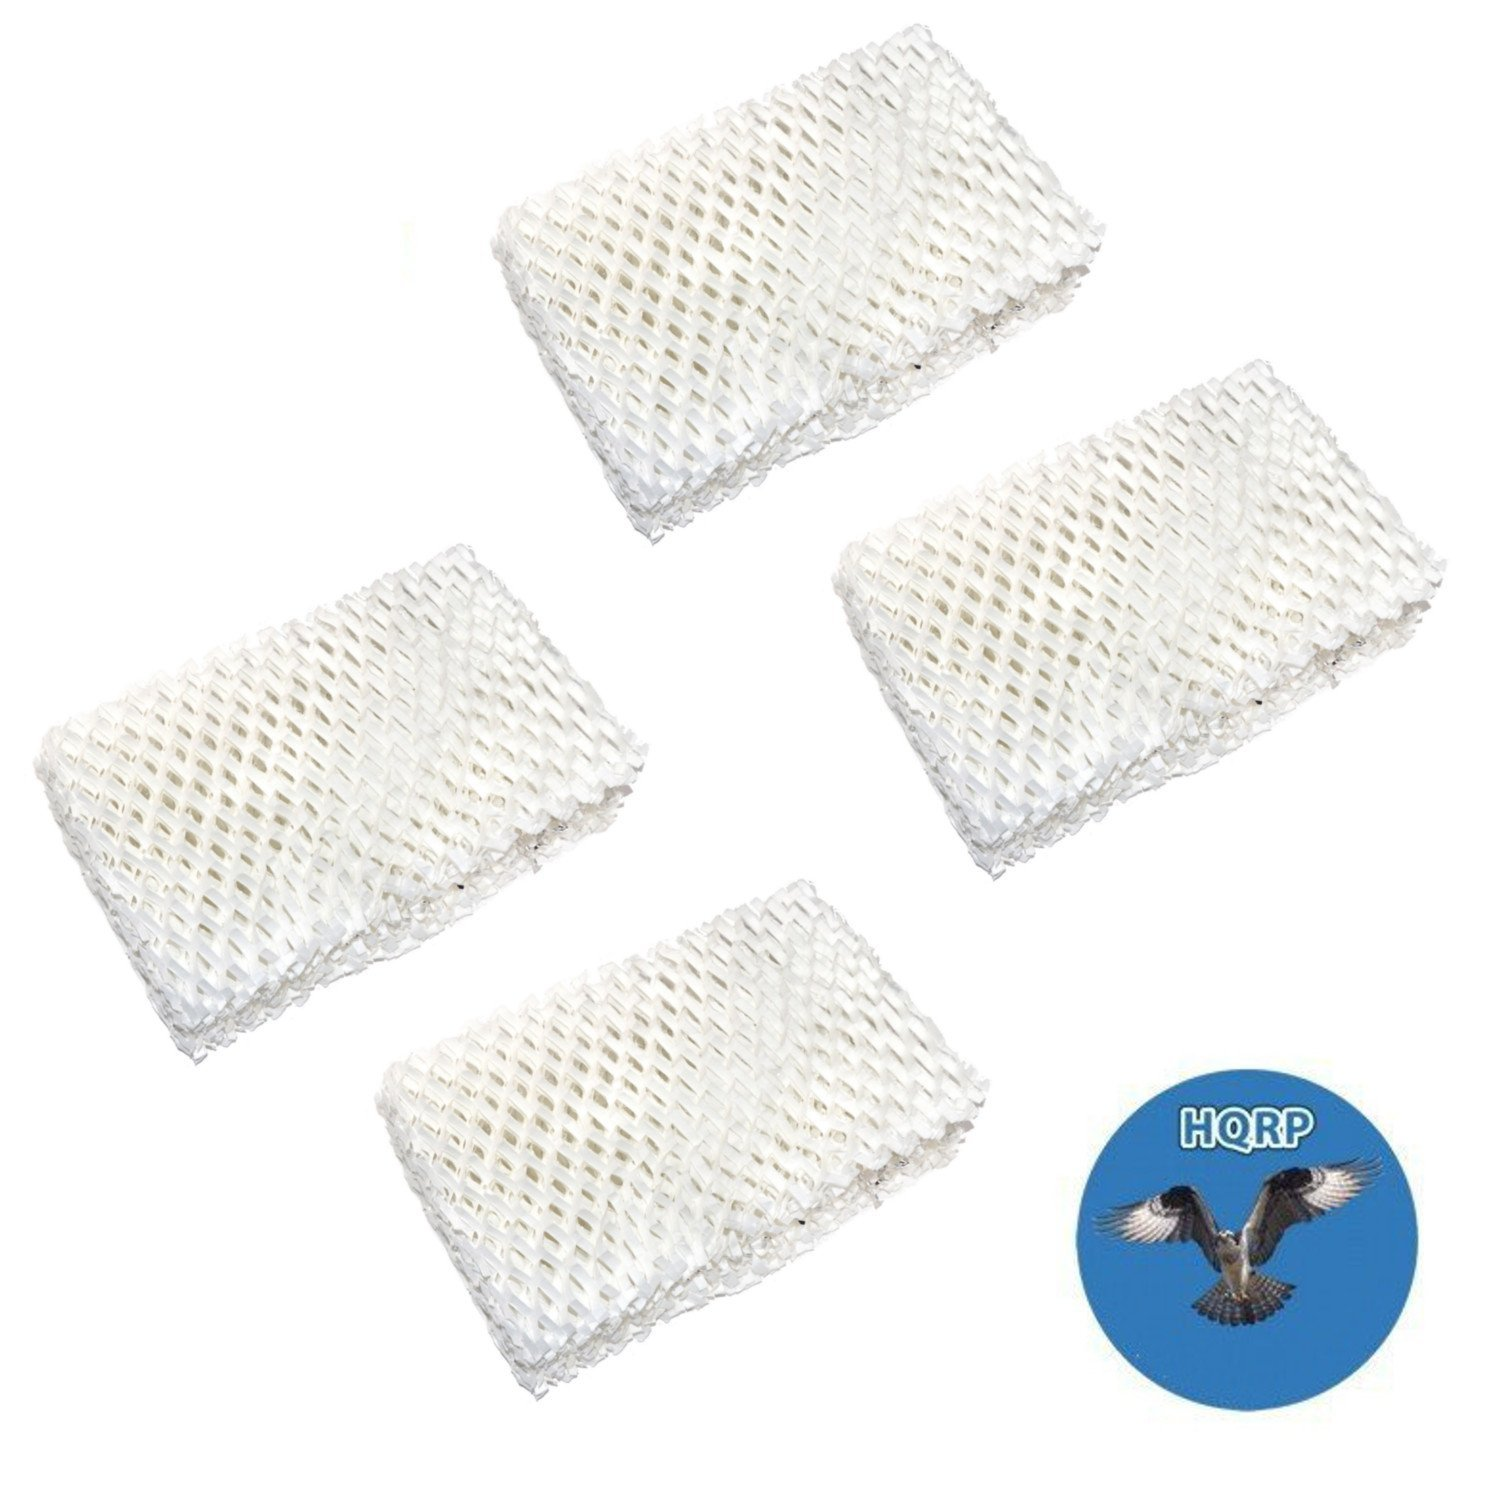 HQRP 4-pack Wick Filter for Kenmore 14413, 14416, 1442, 14407, 14451, 144070, 144071, 144130, 144131, 144510, 144160, 144161, 144162 Humidifier + HQRP Coaster